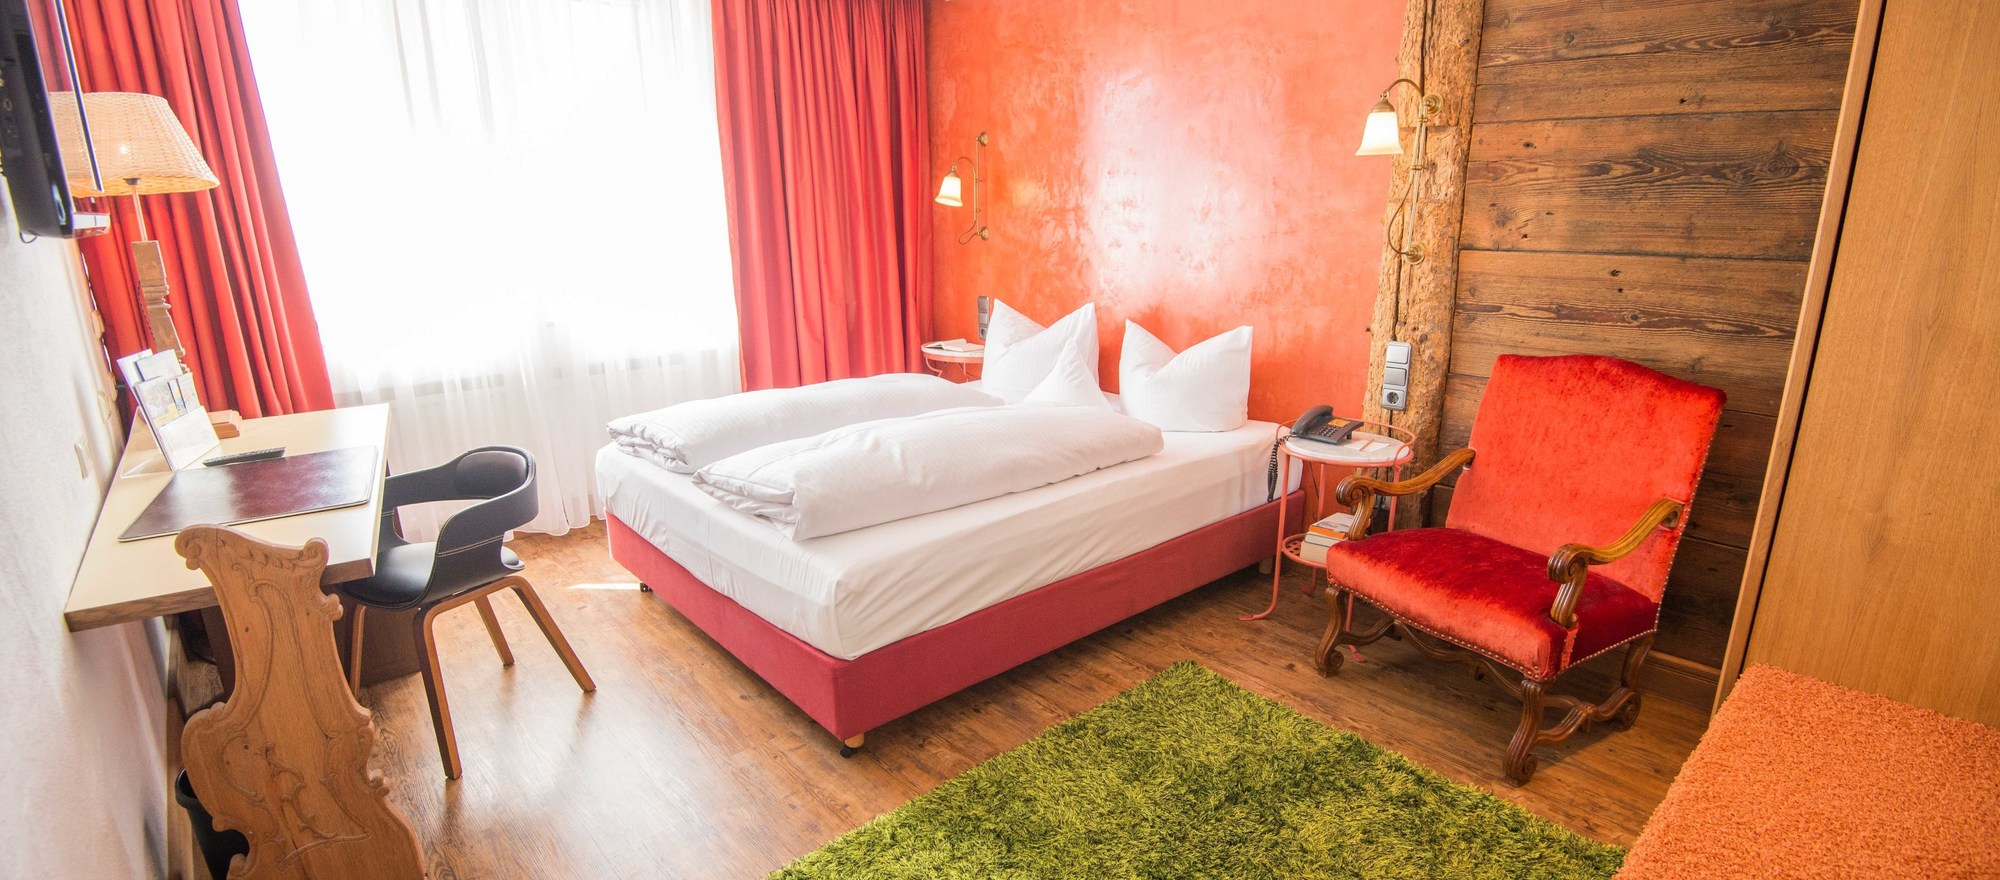 Comfort double room at the Ringhotel Alpenhof in Augsburg, hotel in Swabia